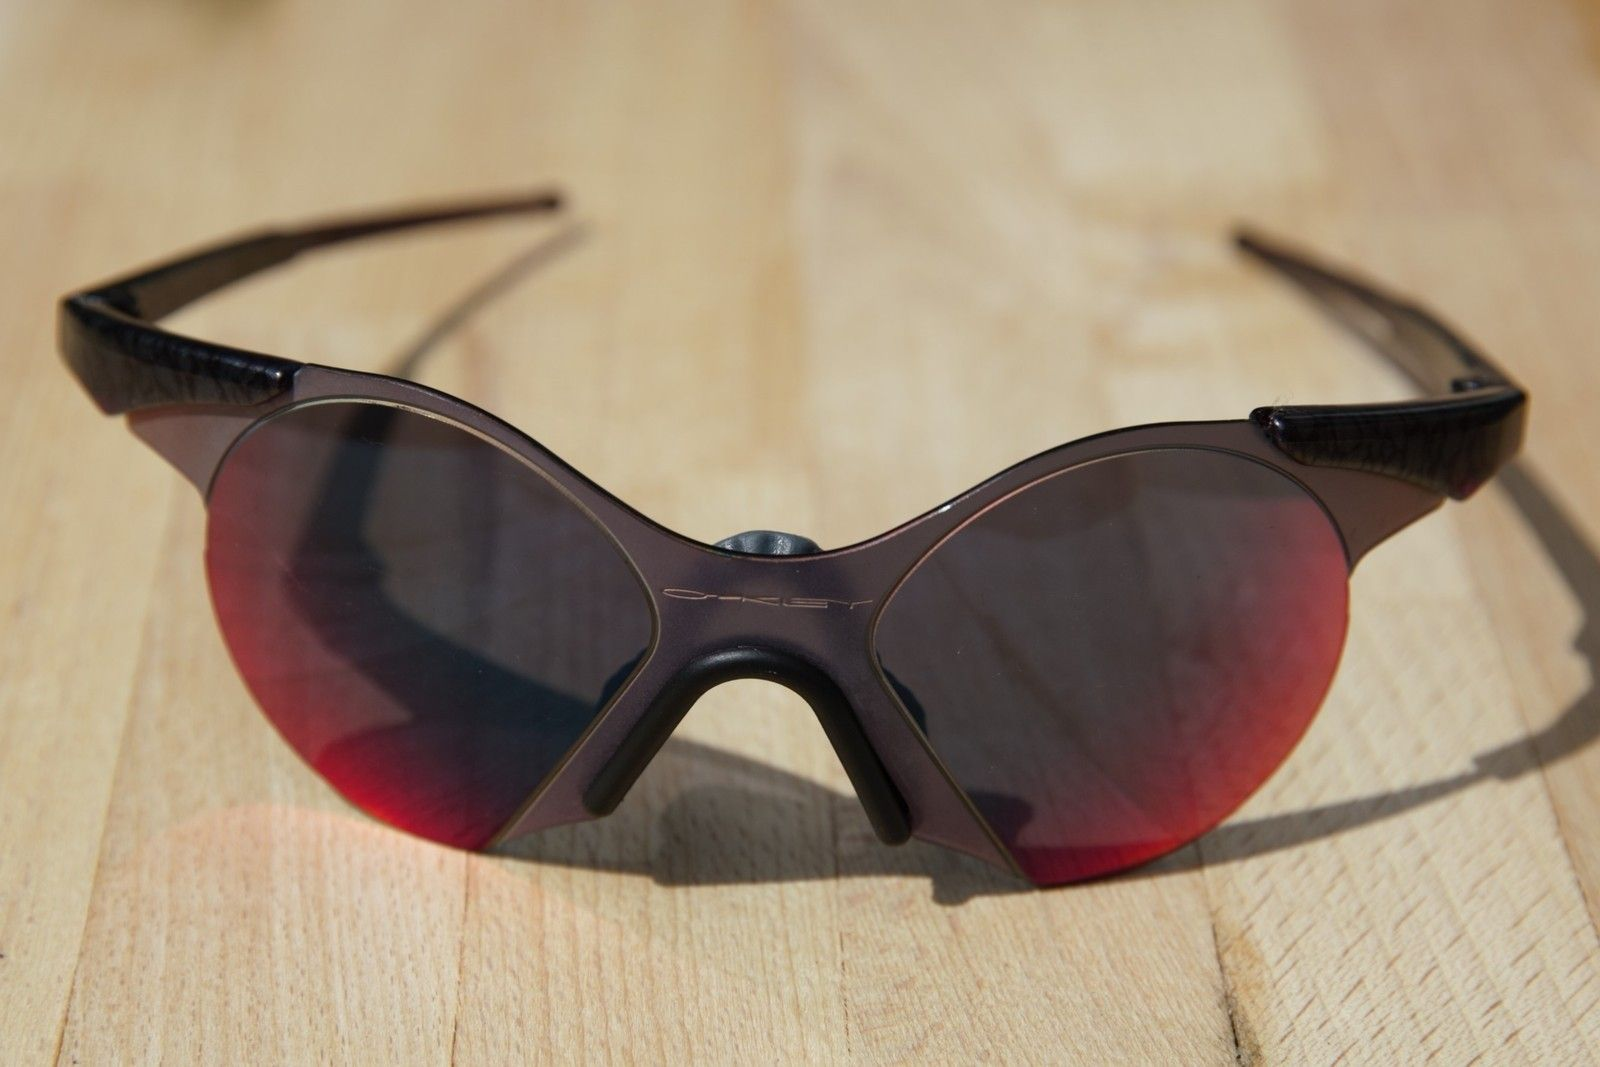 Oakley sub zero red pos. - IMG_8286 (2) - Copy.jpg